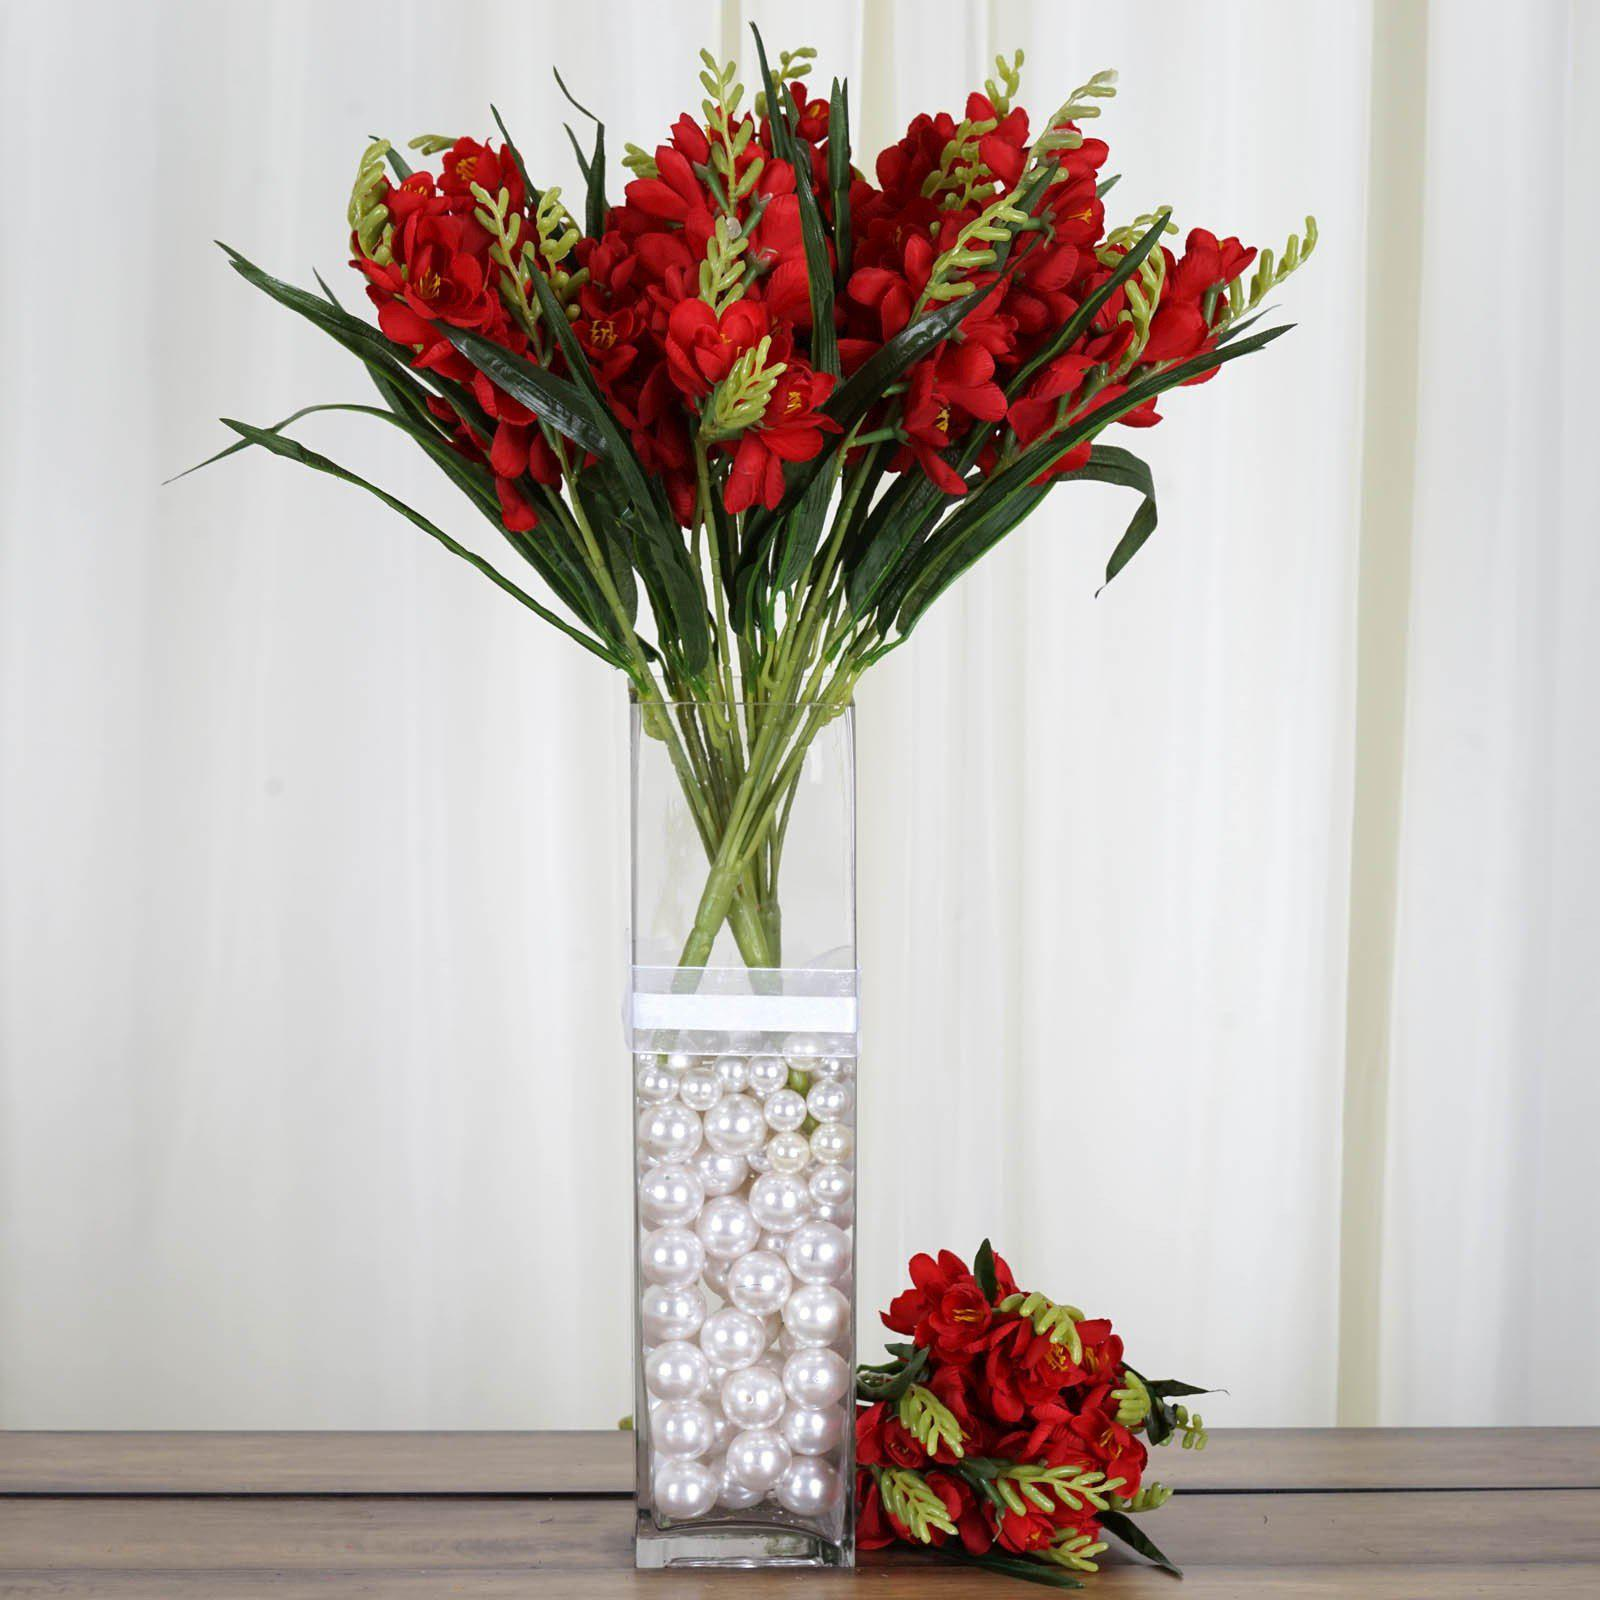 4 Bush 54 pcs Red Artificial Freesia Flower Wedding Vase Decoration ...